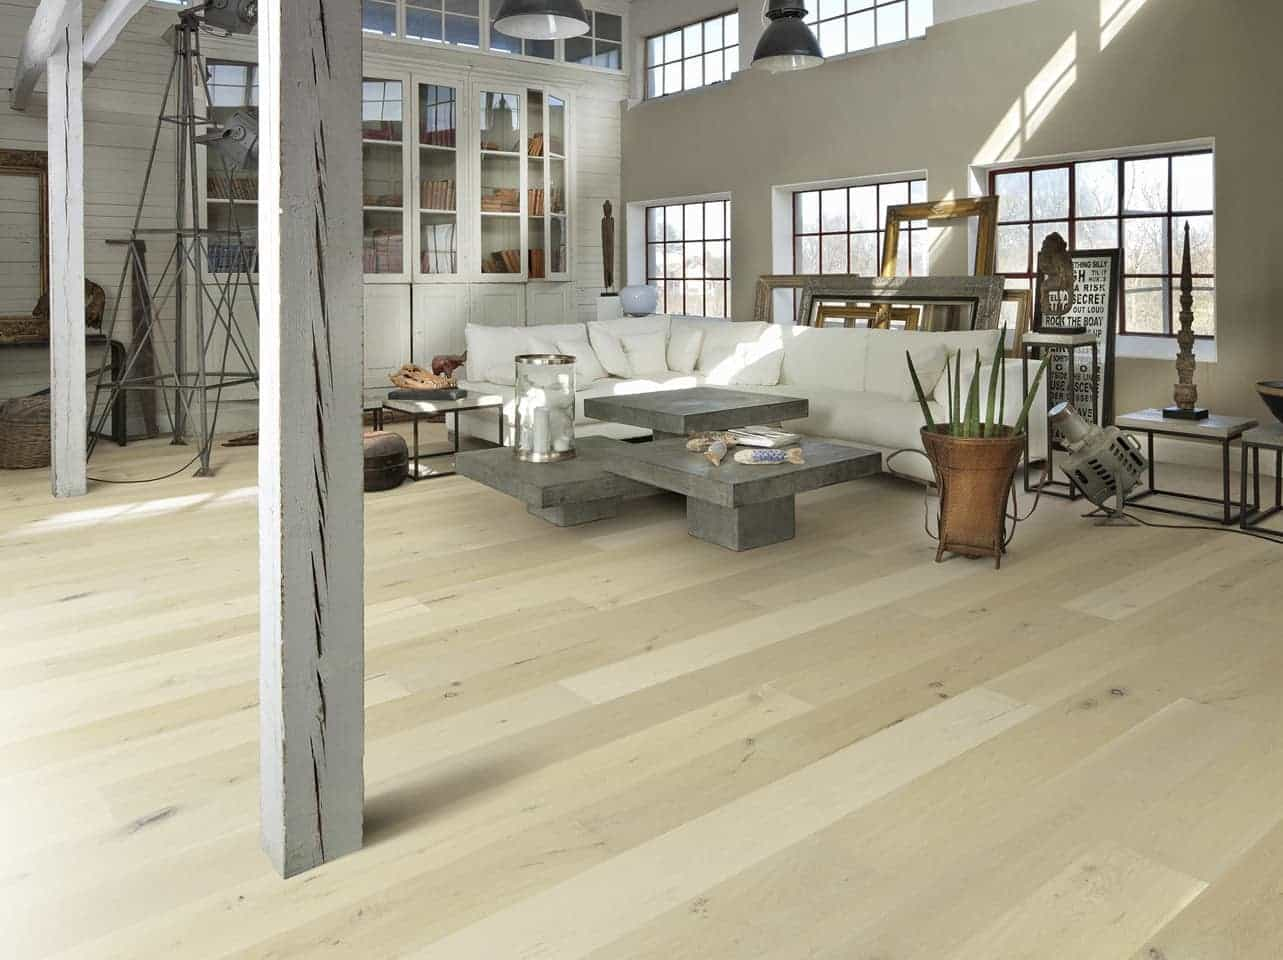 Find your floor here at Hallmark Floors. We have the right floor for your needs. Truly beautiful, durable and perfect for any life style.